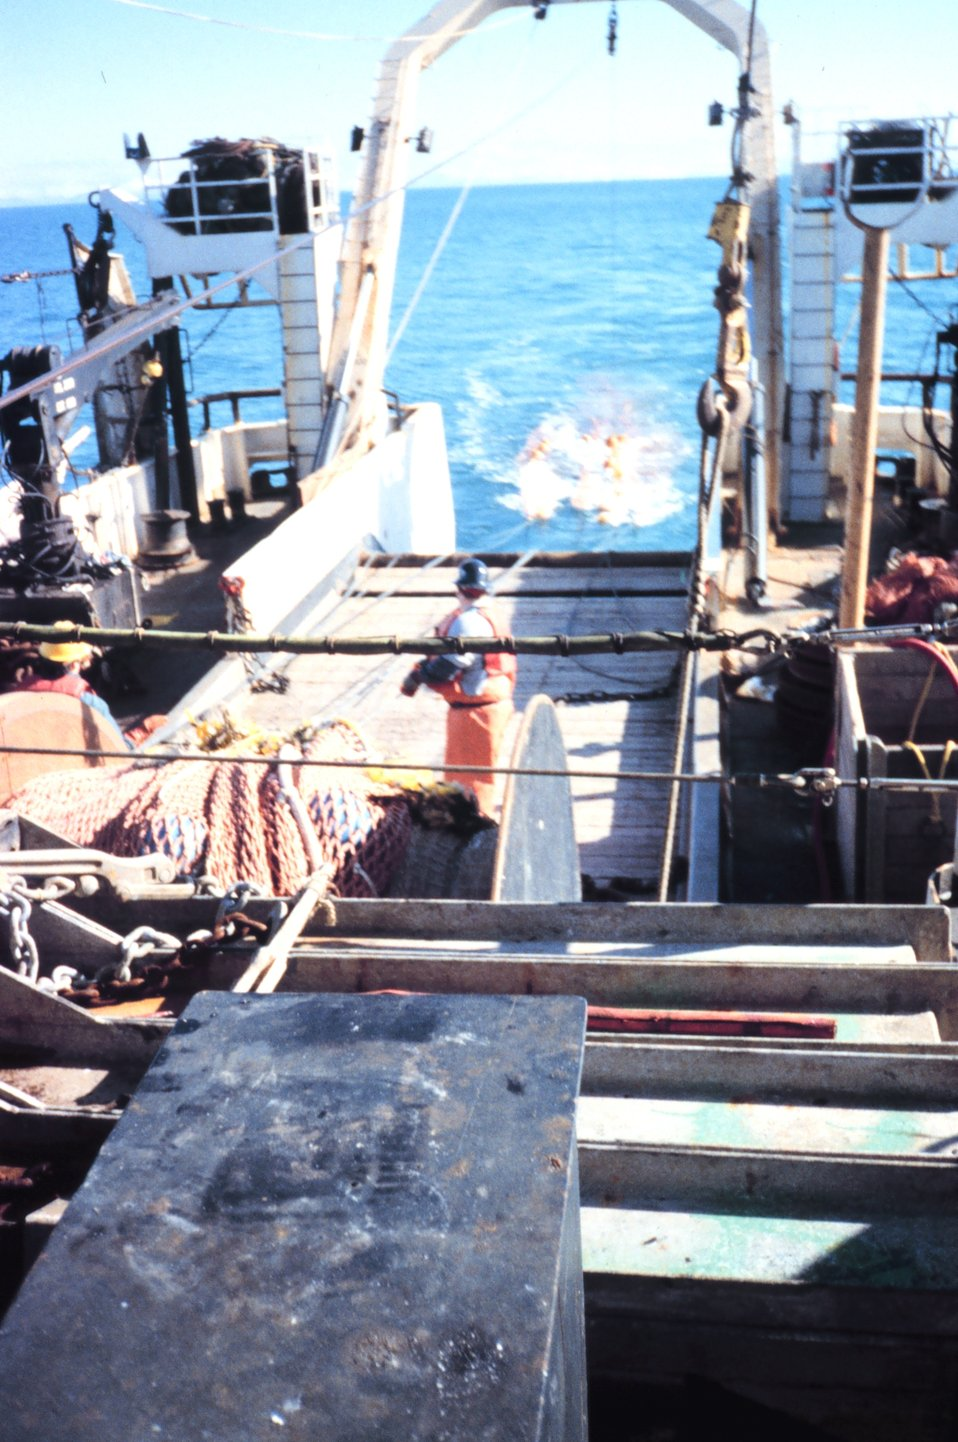 Photo # 3 - Streaming net during  trawling operations.  Yellow floats are pulled underwater but help keep the mouth of the net open while being towed.